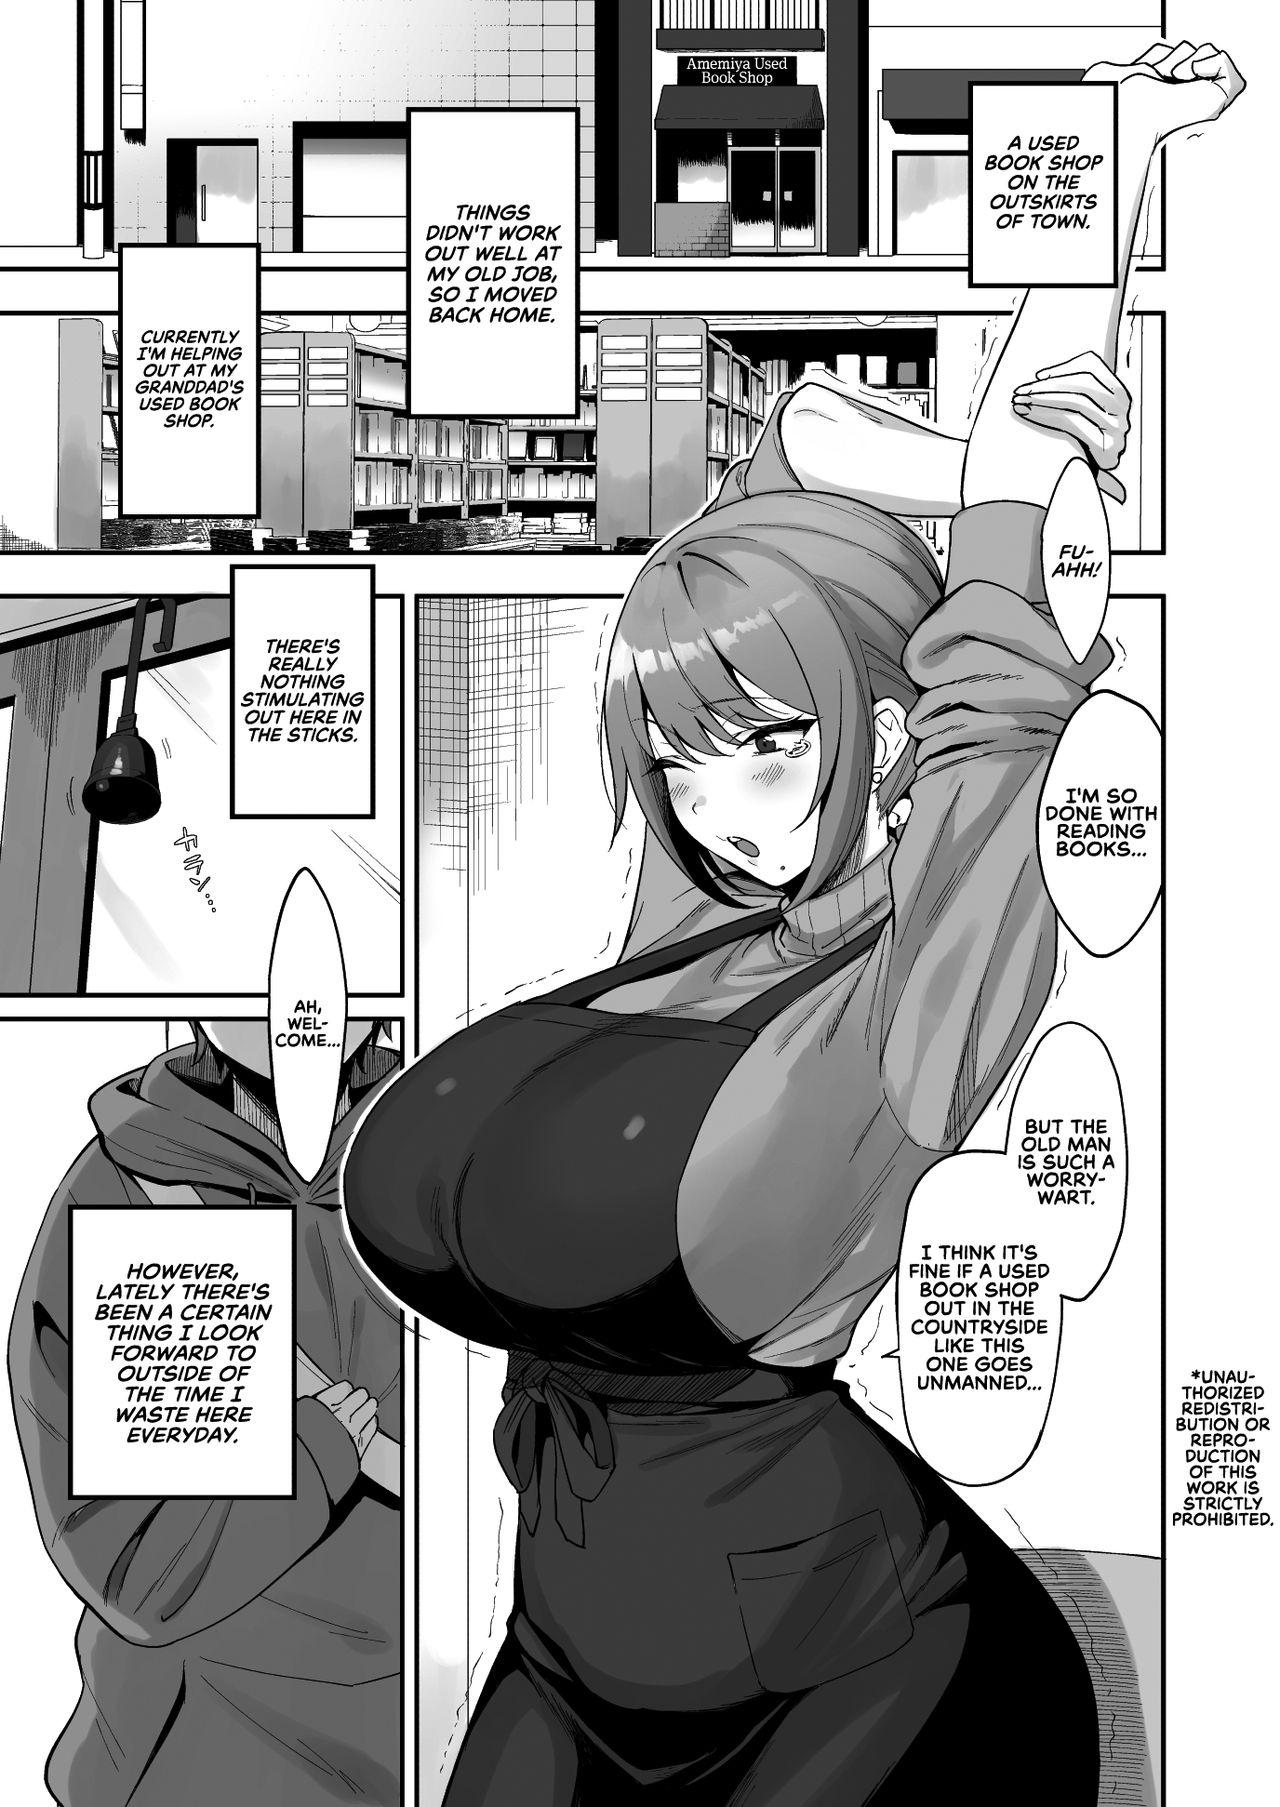 Furuhonya no Onee-san to   With The Lady From The Used Book Shop 3